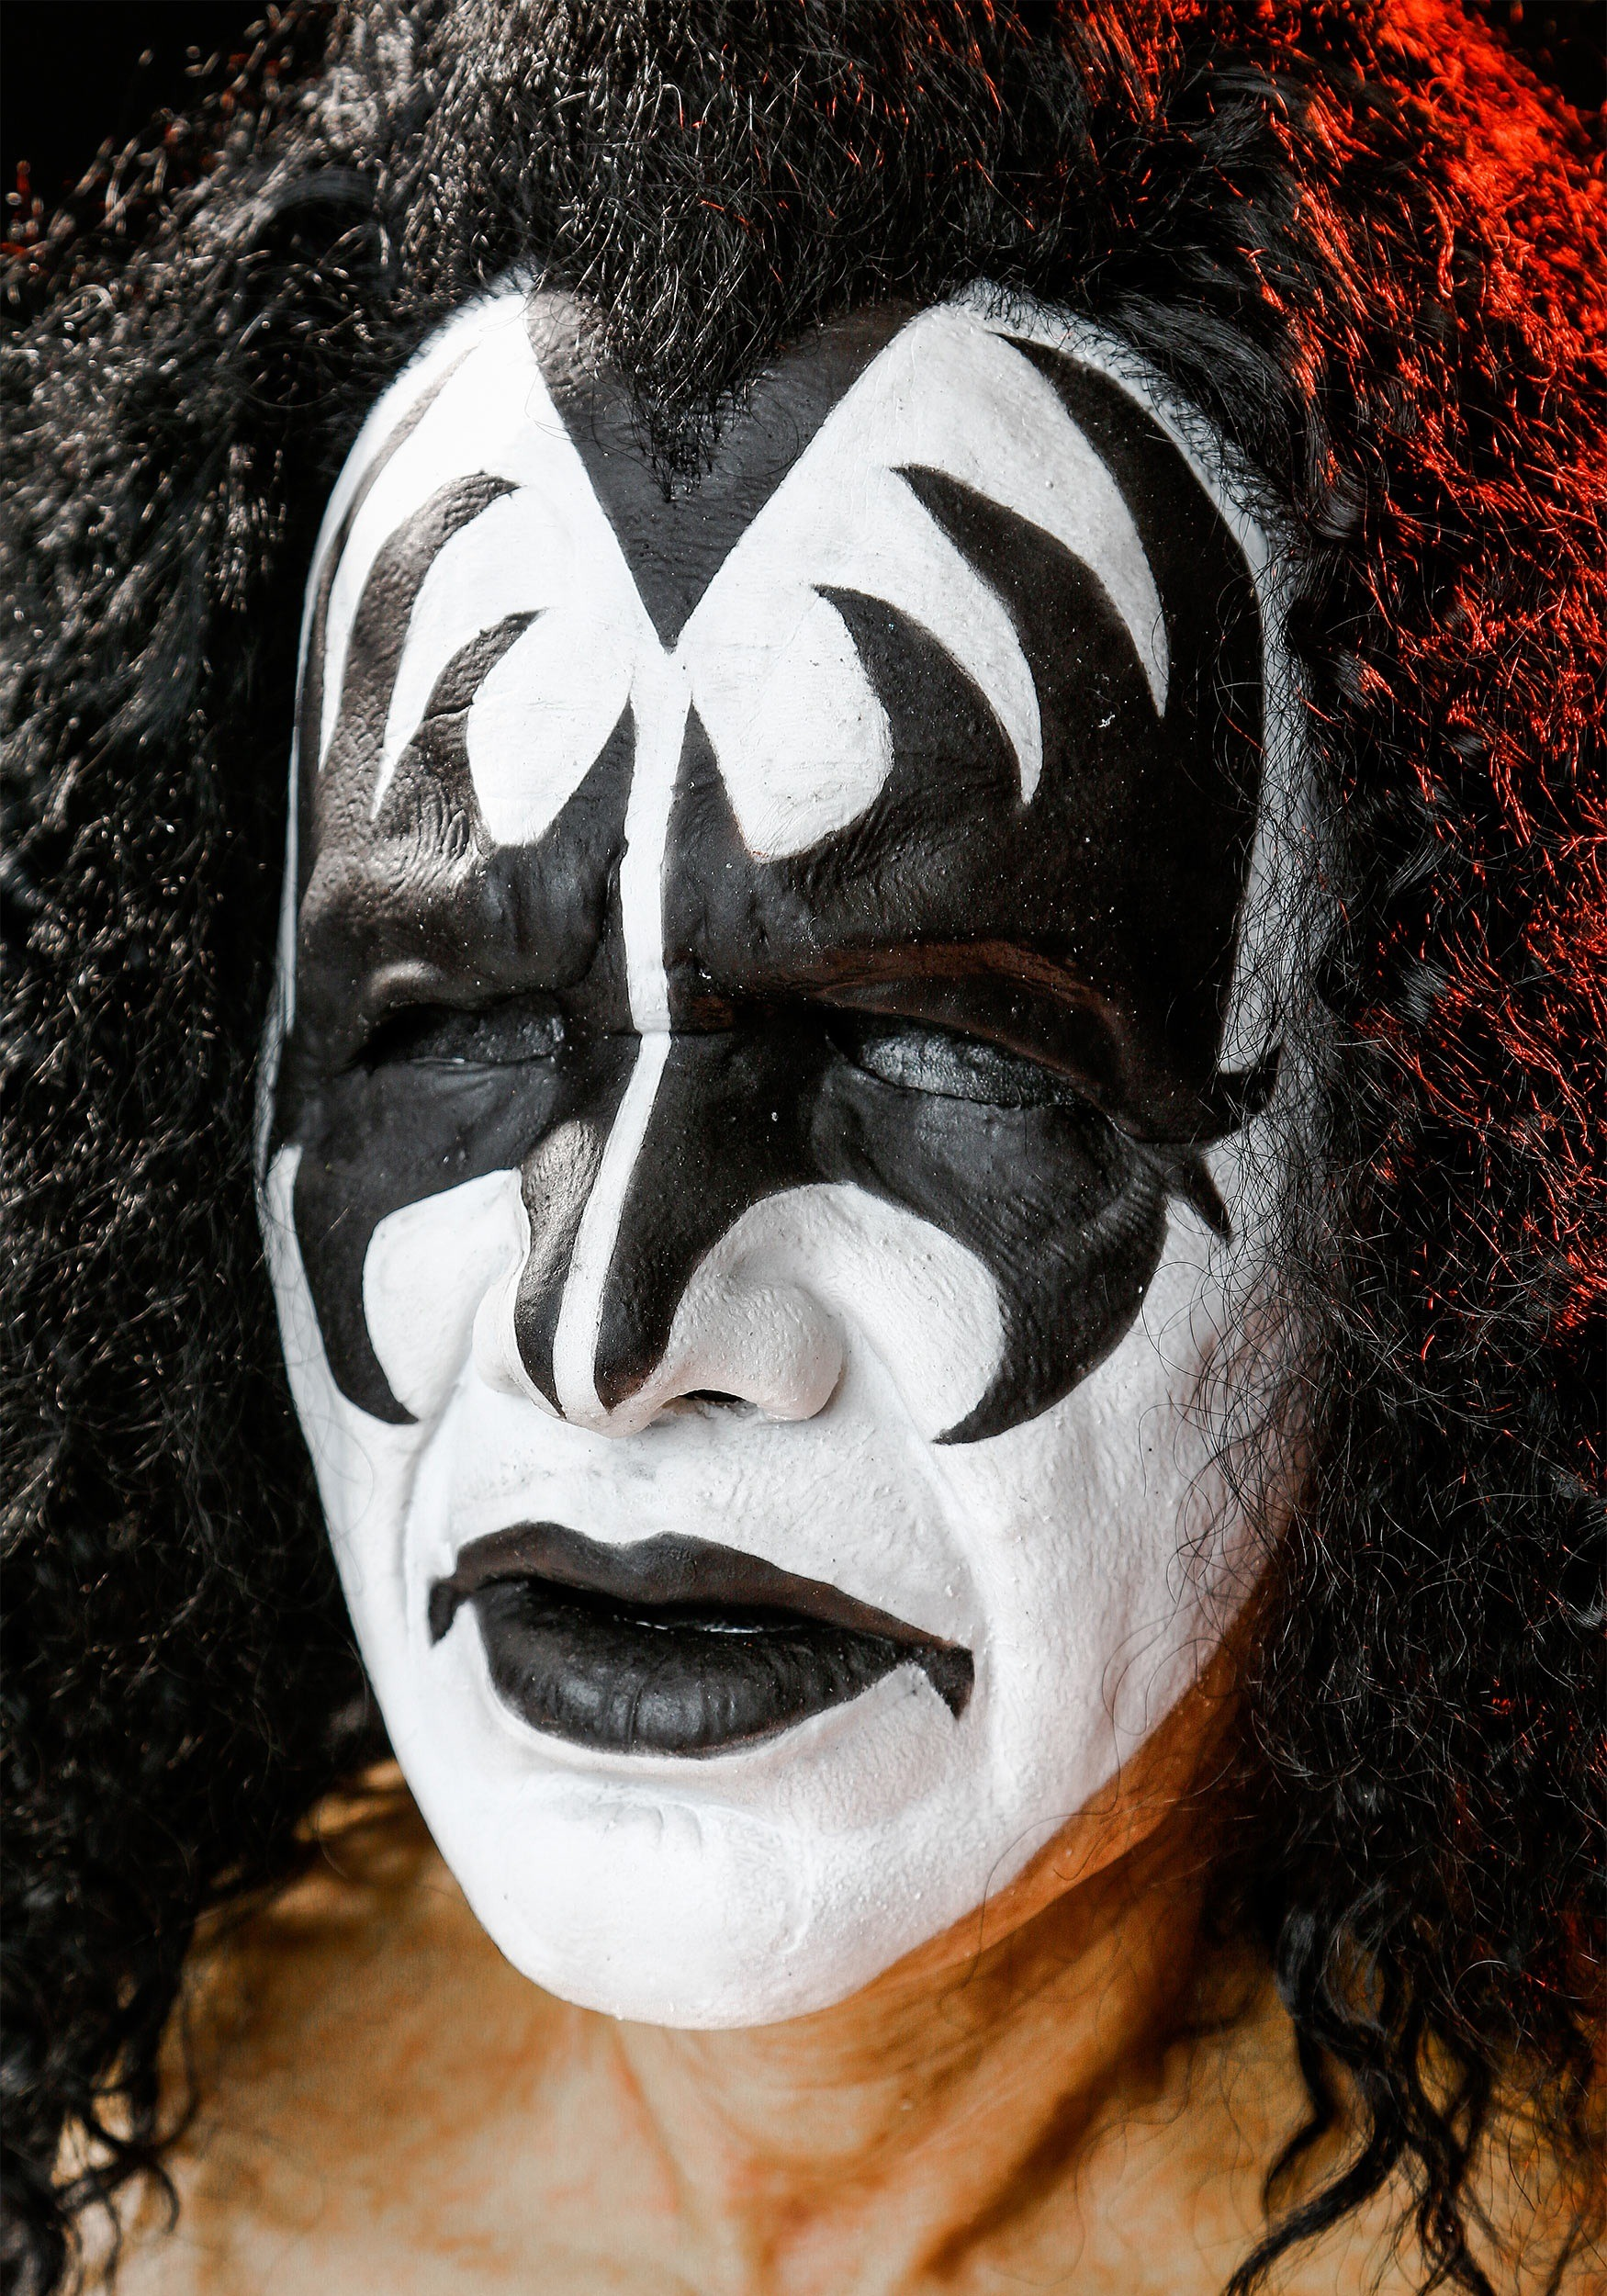 Kiss gene simmons face images for Kiss mask template